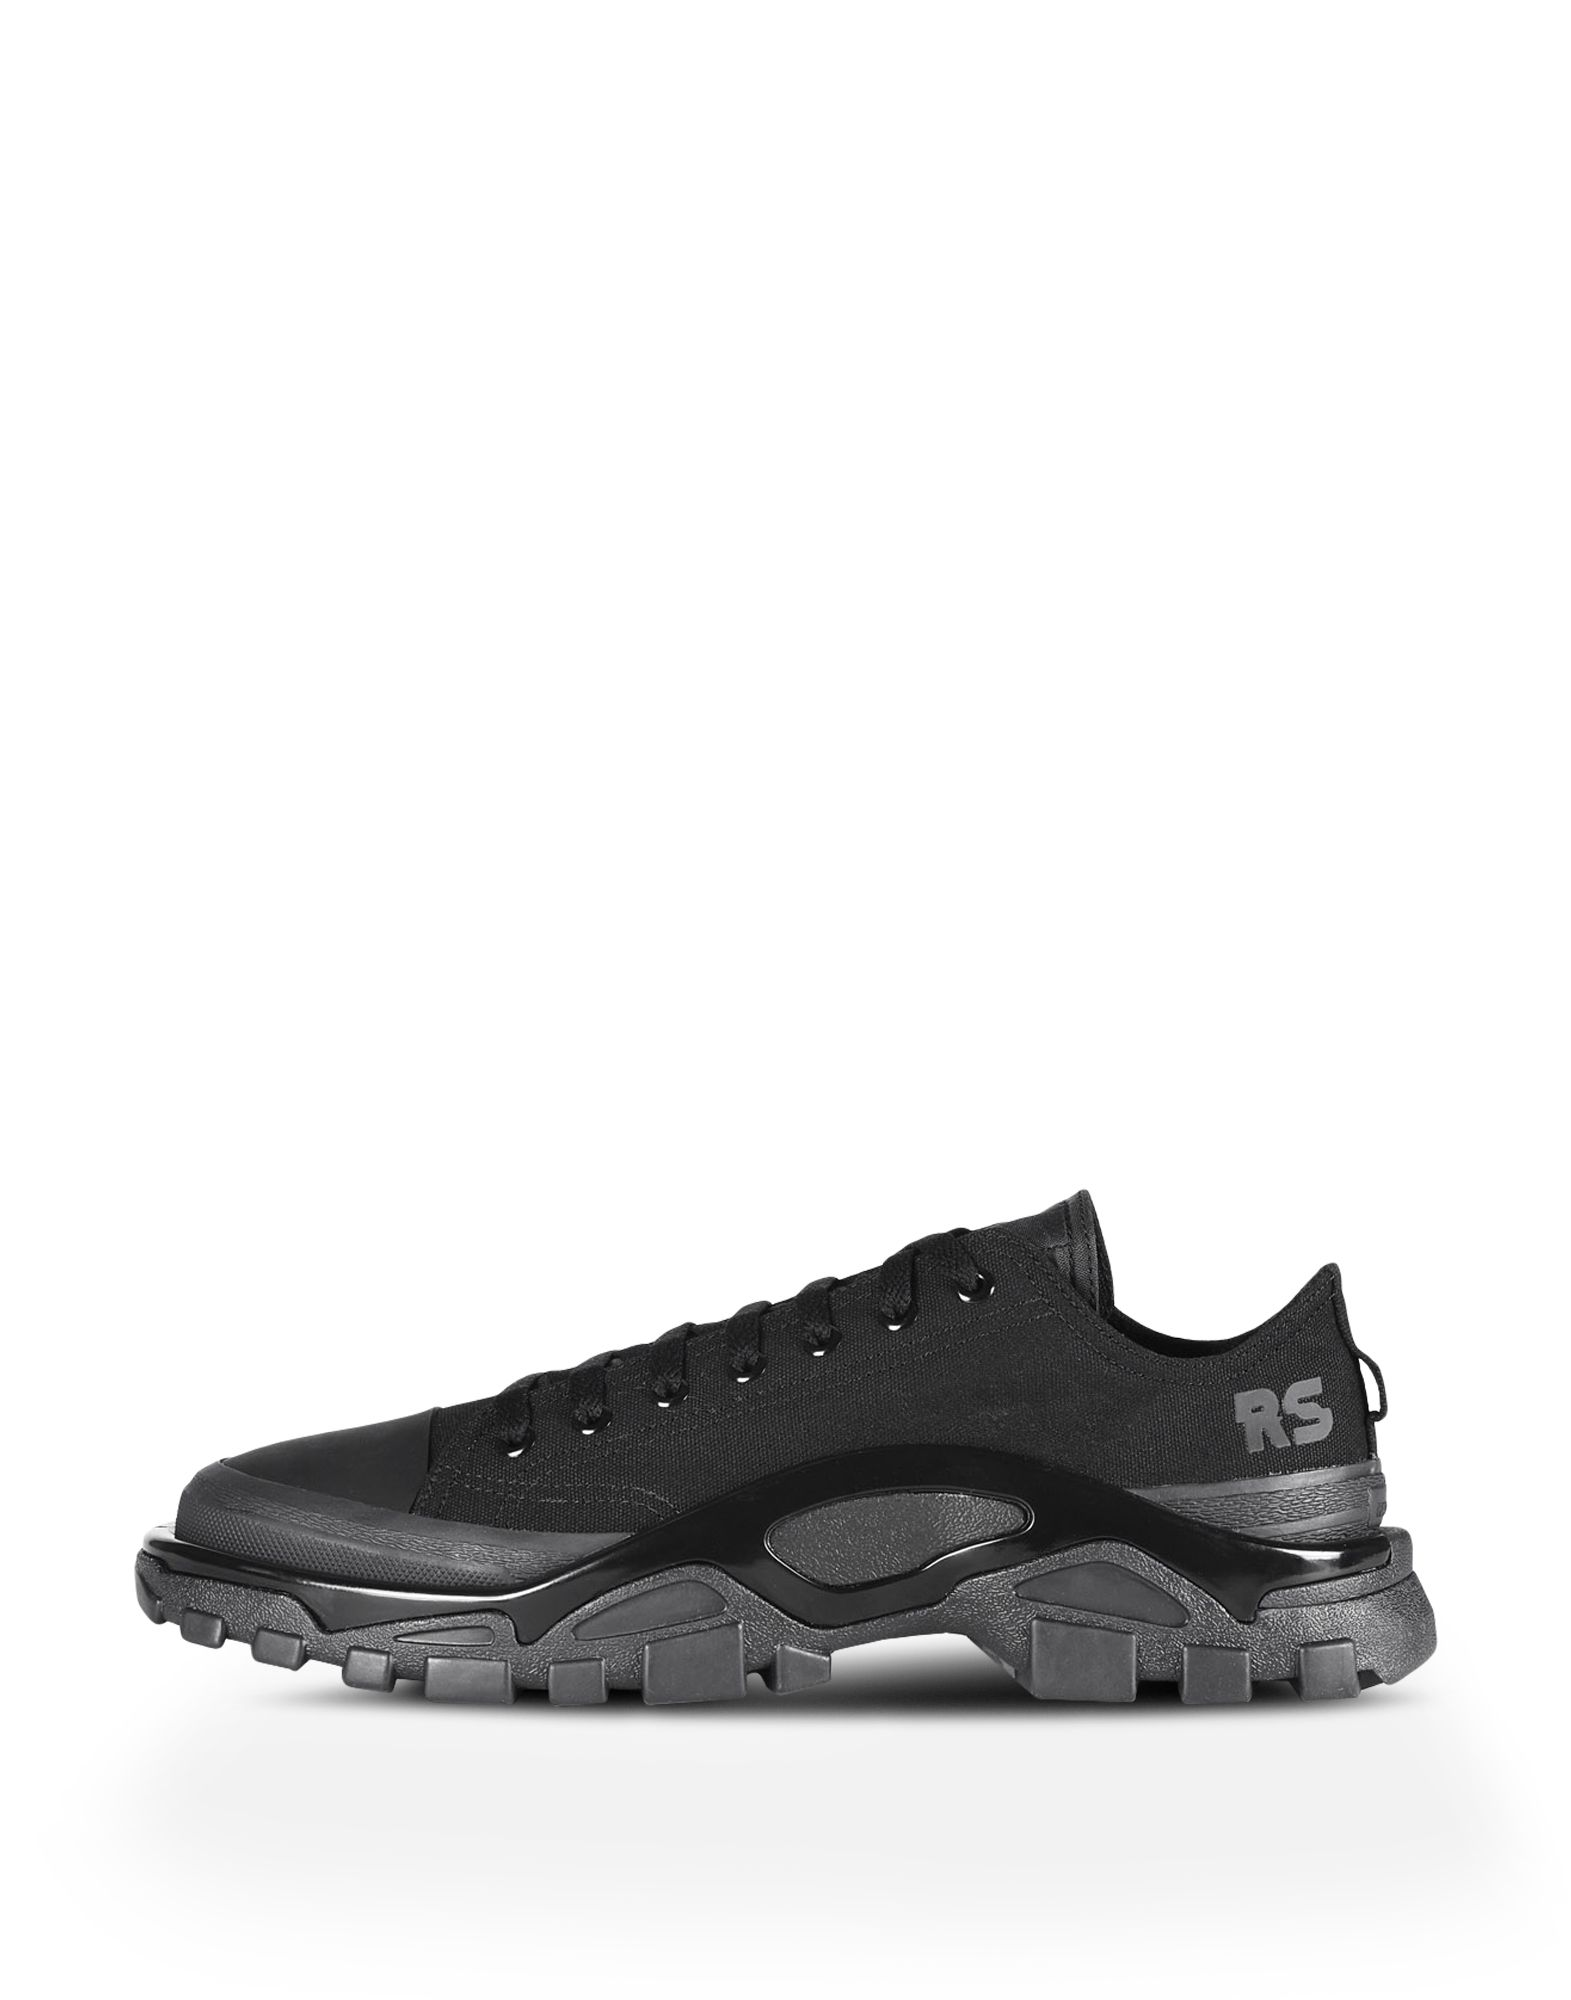 RS Detroit Runner sneakers - Black adidas by Raf Simons